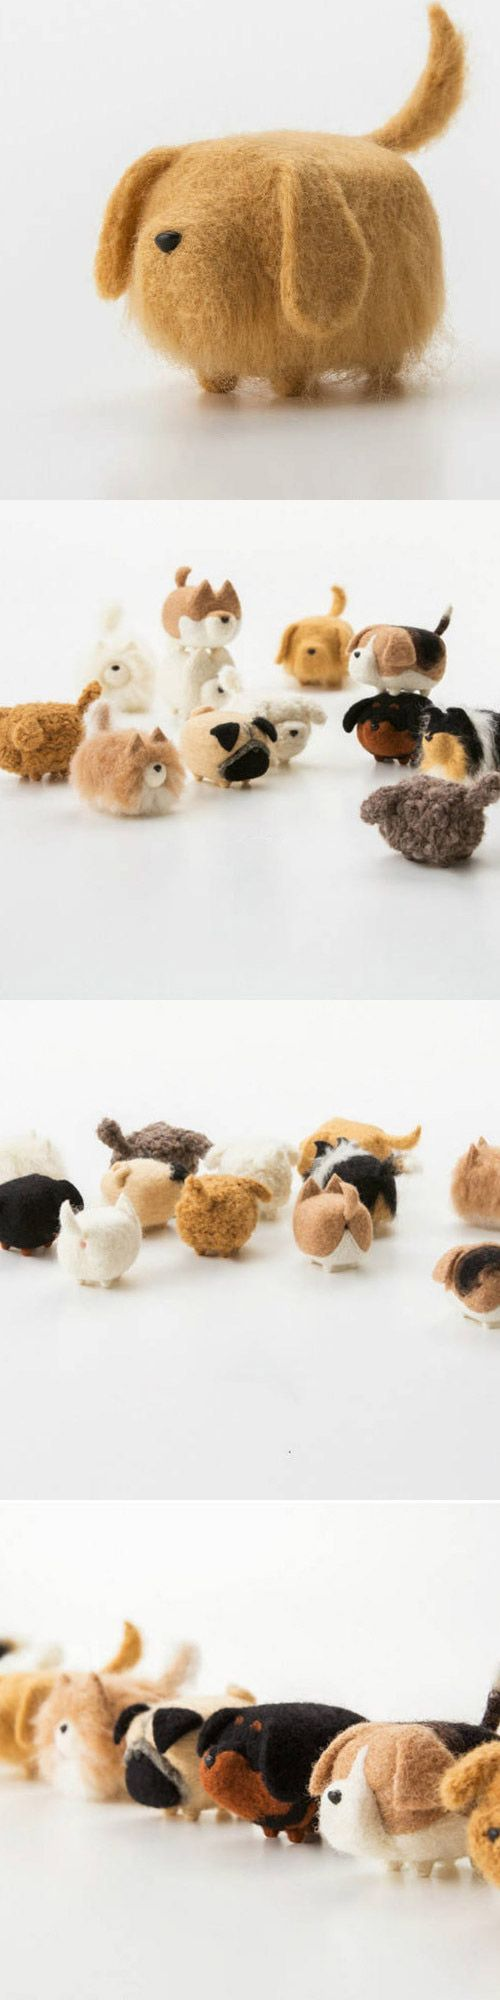 Handmade felted felting project cute animal Golden Retriever dogs puppy felted wool doll